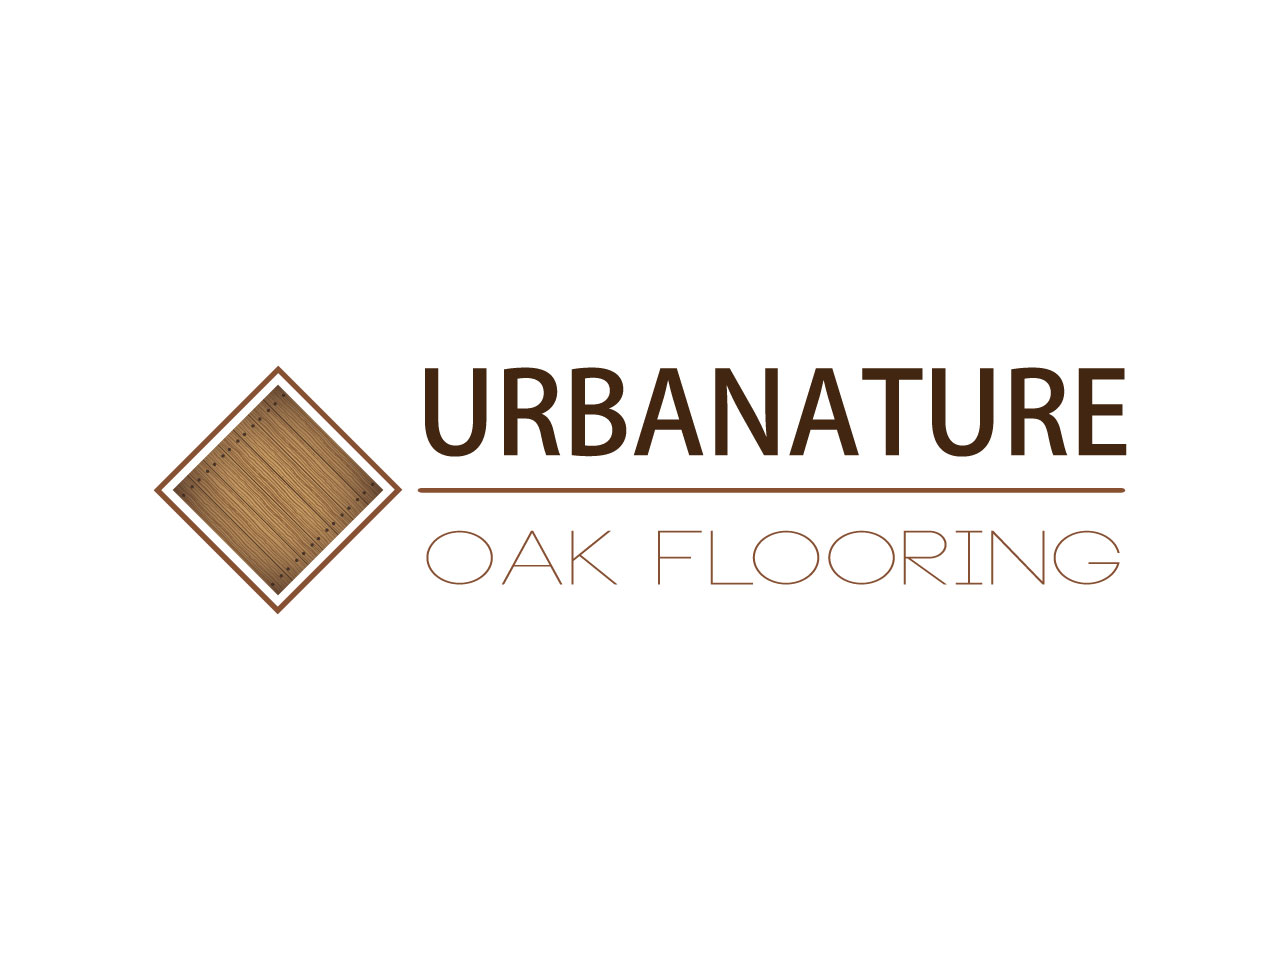 URBANATURE OAK Flooring